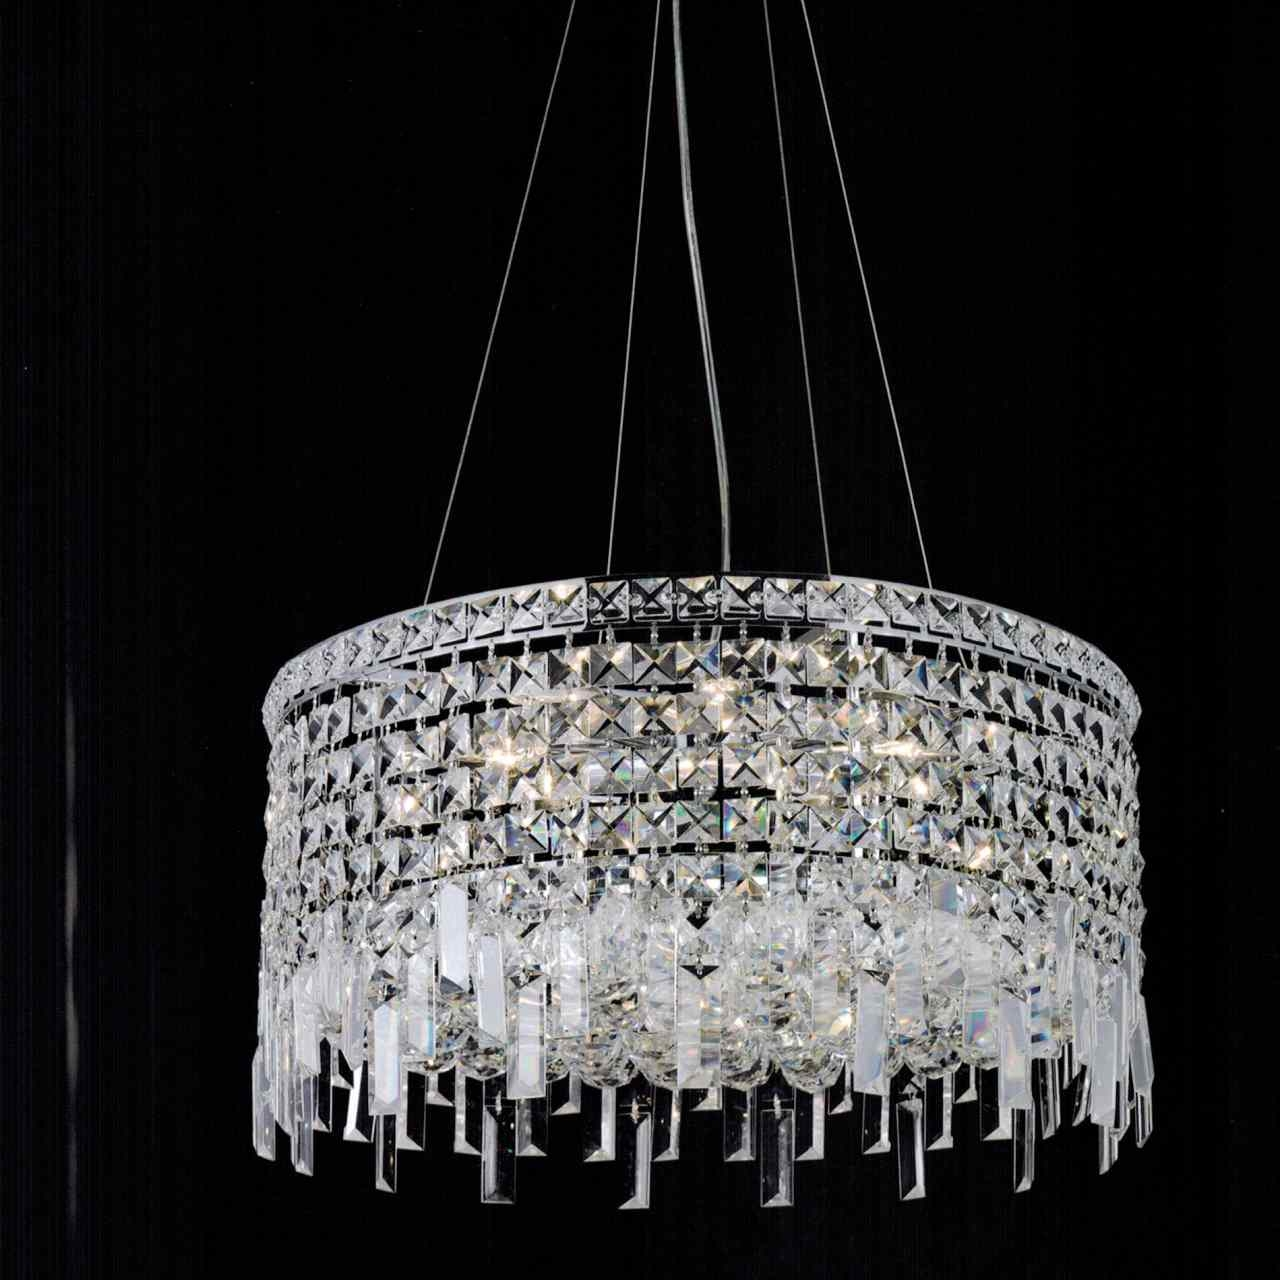 Brizzo Lighting Stores 16 Bossolo Transitional Crystal Round In Crystal And Chrome Chandeliers (Image 6 of 15)